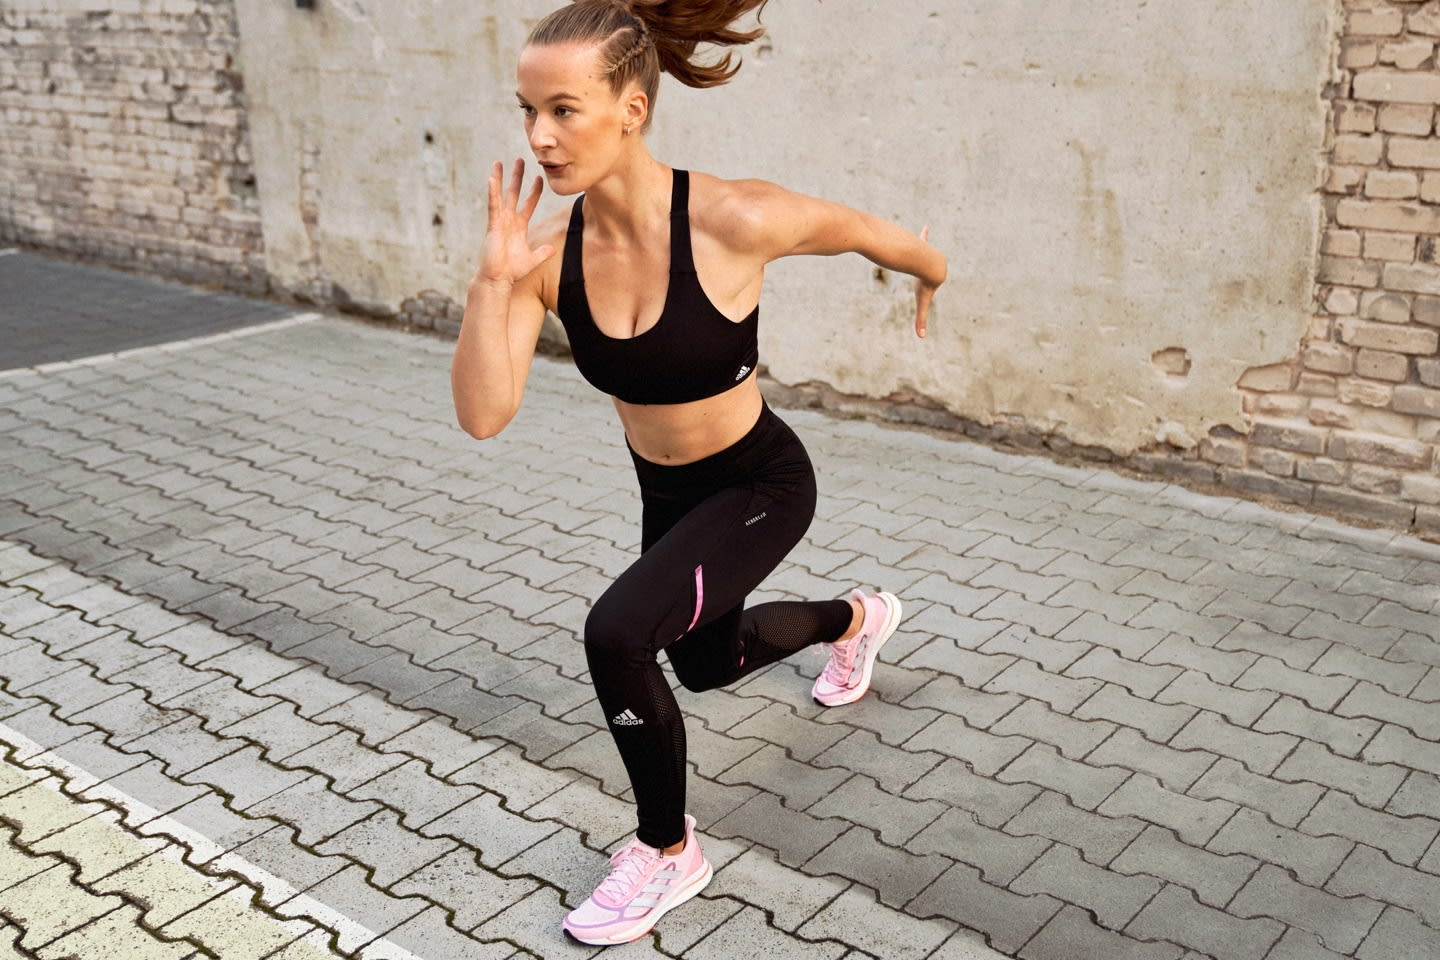 A woman wearing an adidas bra and tights holds a yoga pose in front of a concrete wall.